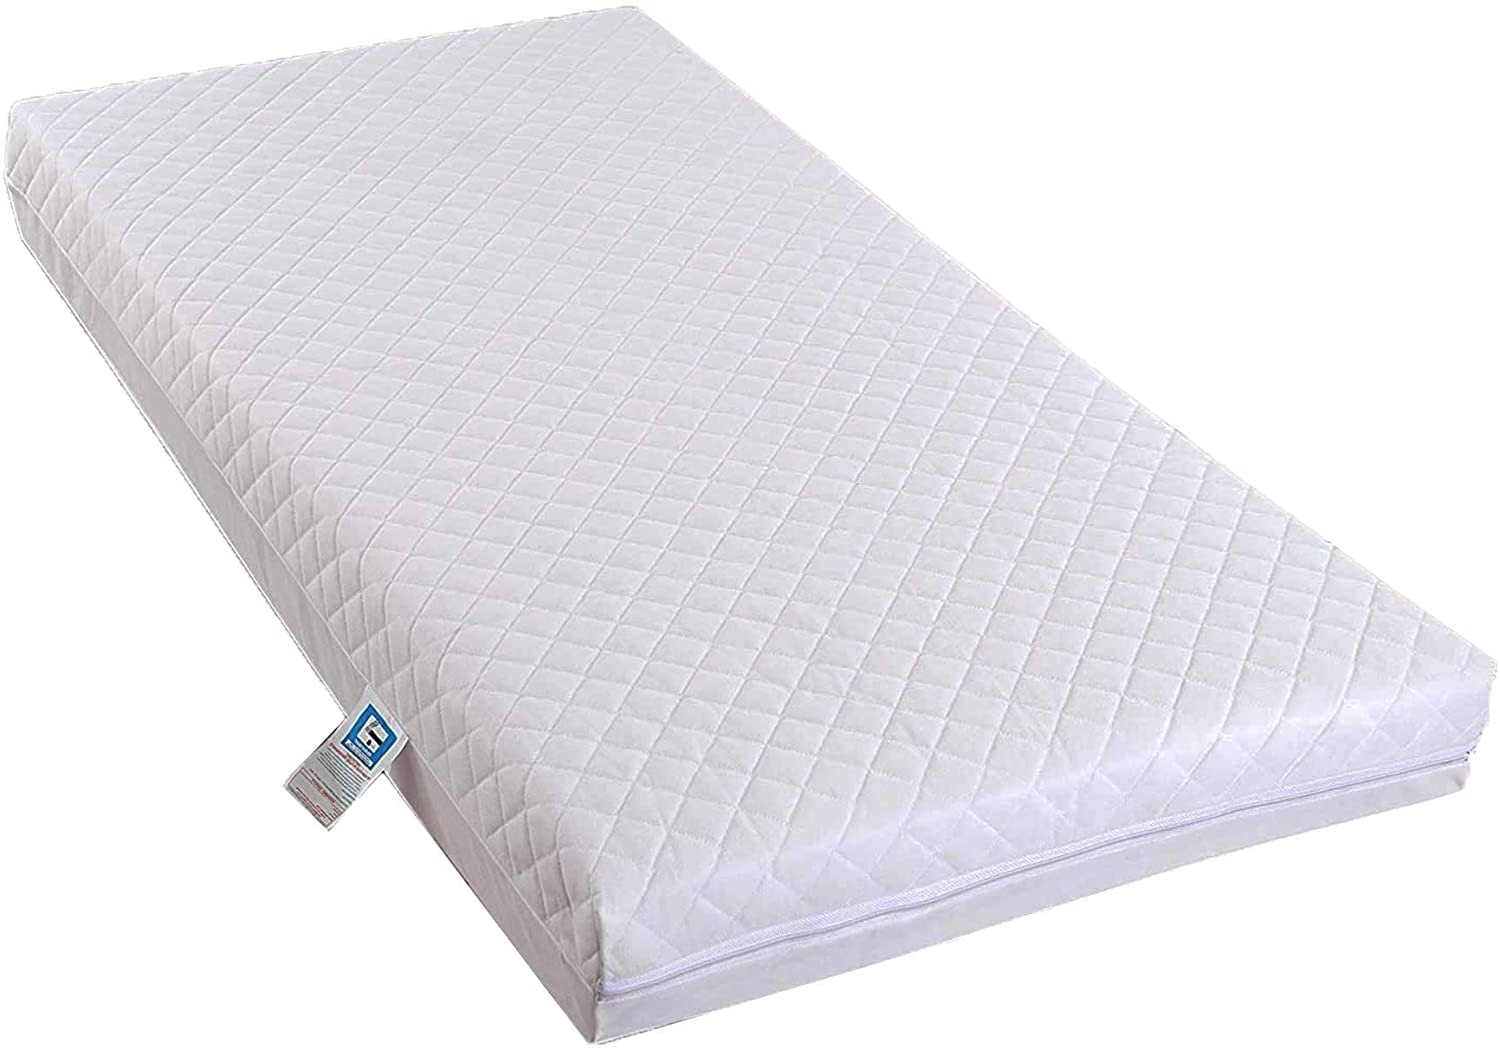 AirComfort Eco Breathable Quilted Extra Thick Cot Mattress.